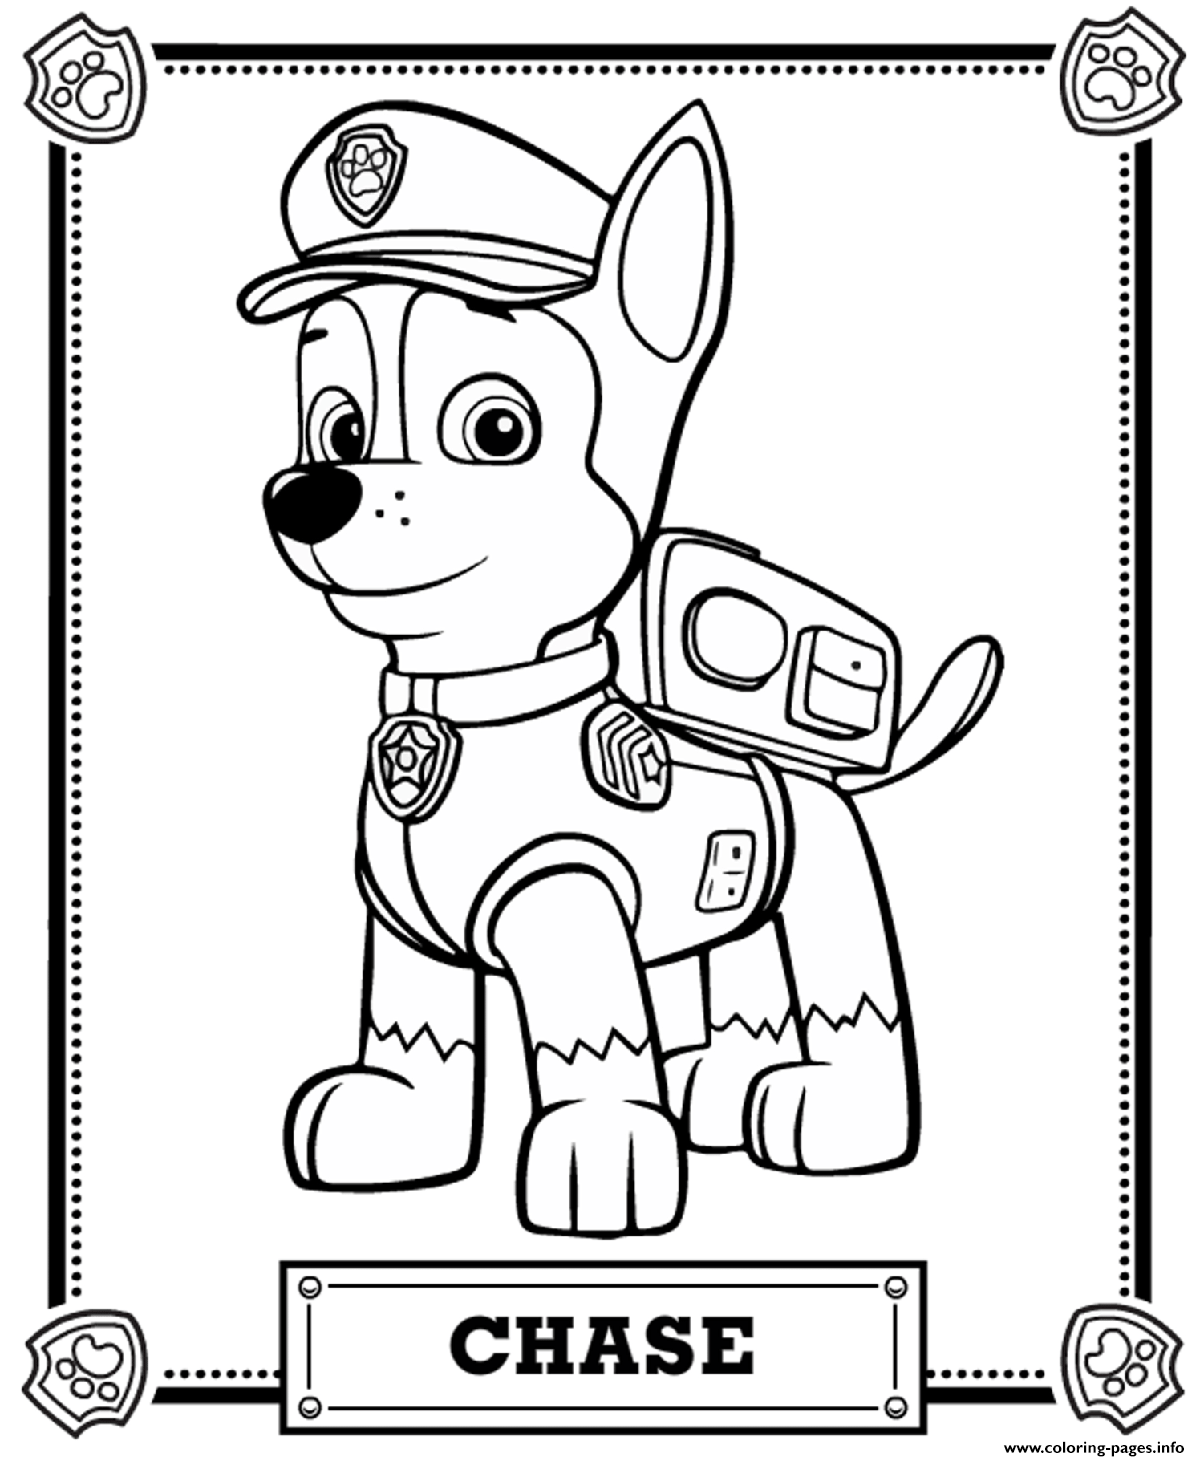 Print Paw Patrol Chase Coloring Pages Paw Patrol Coloring Pages